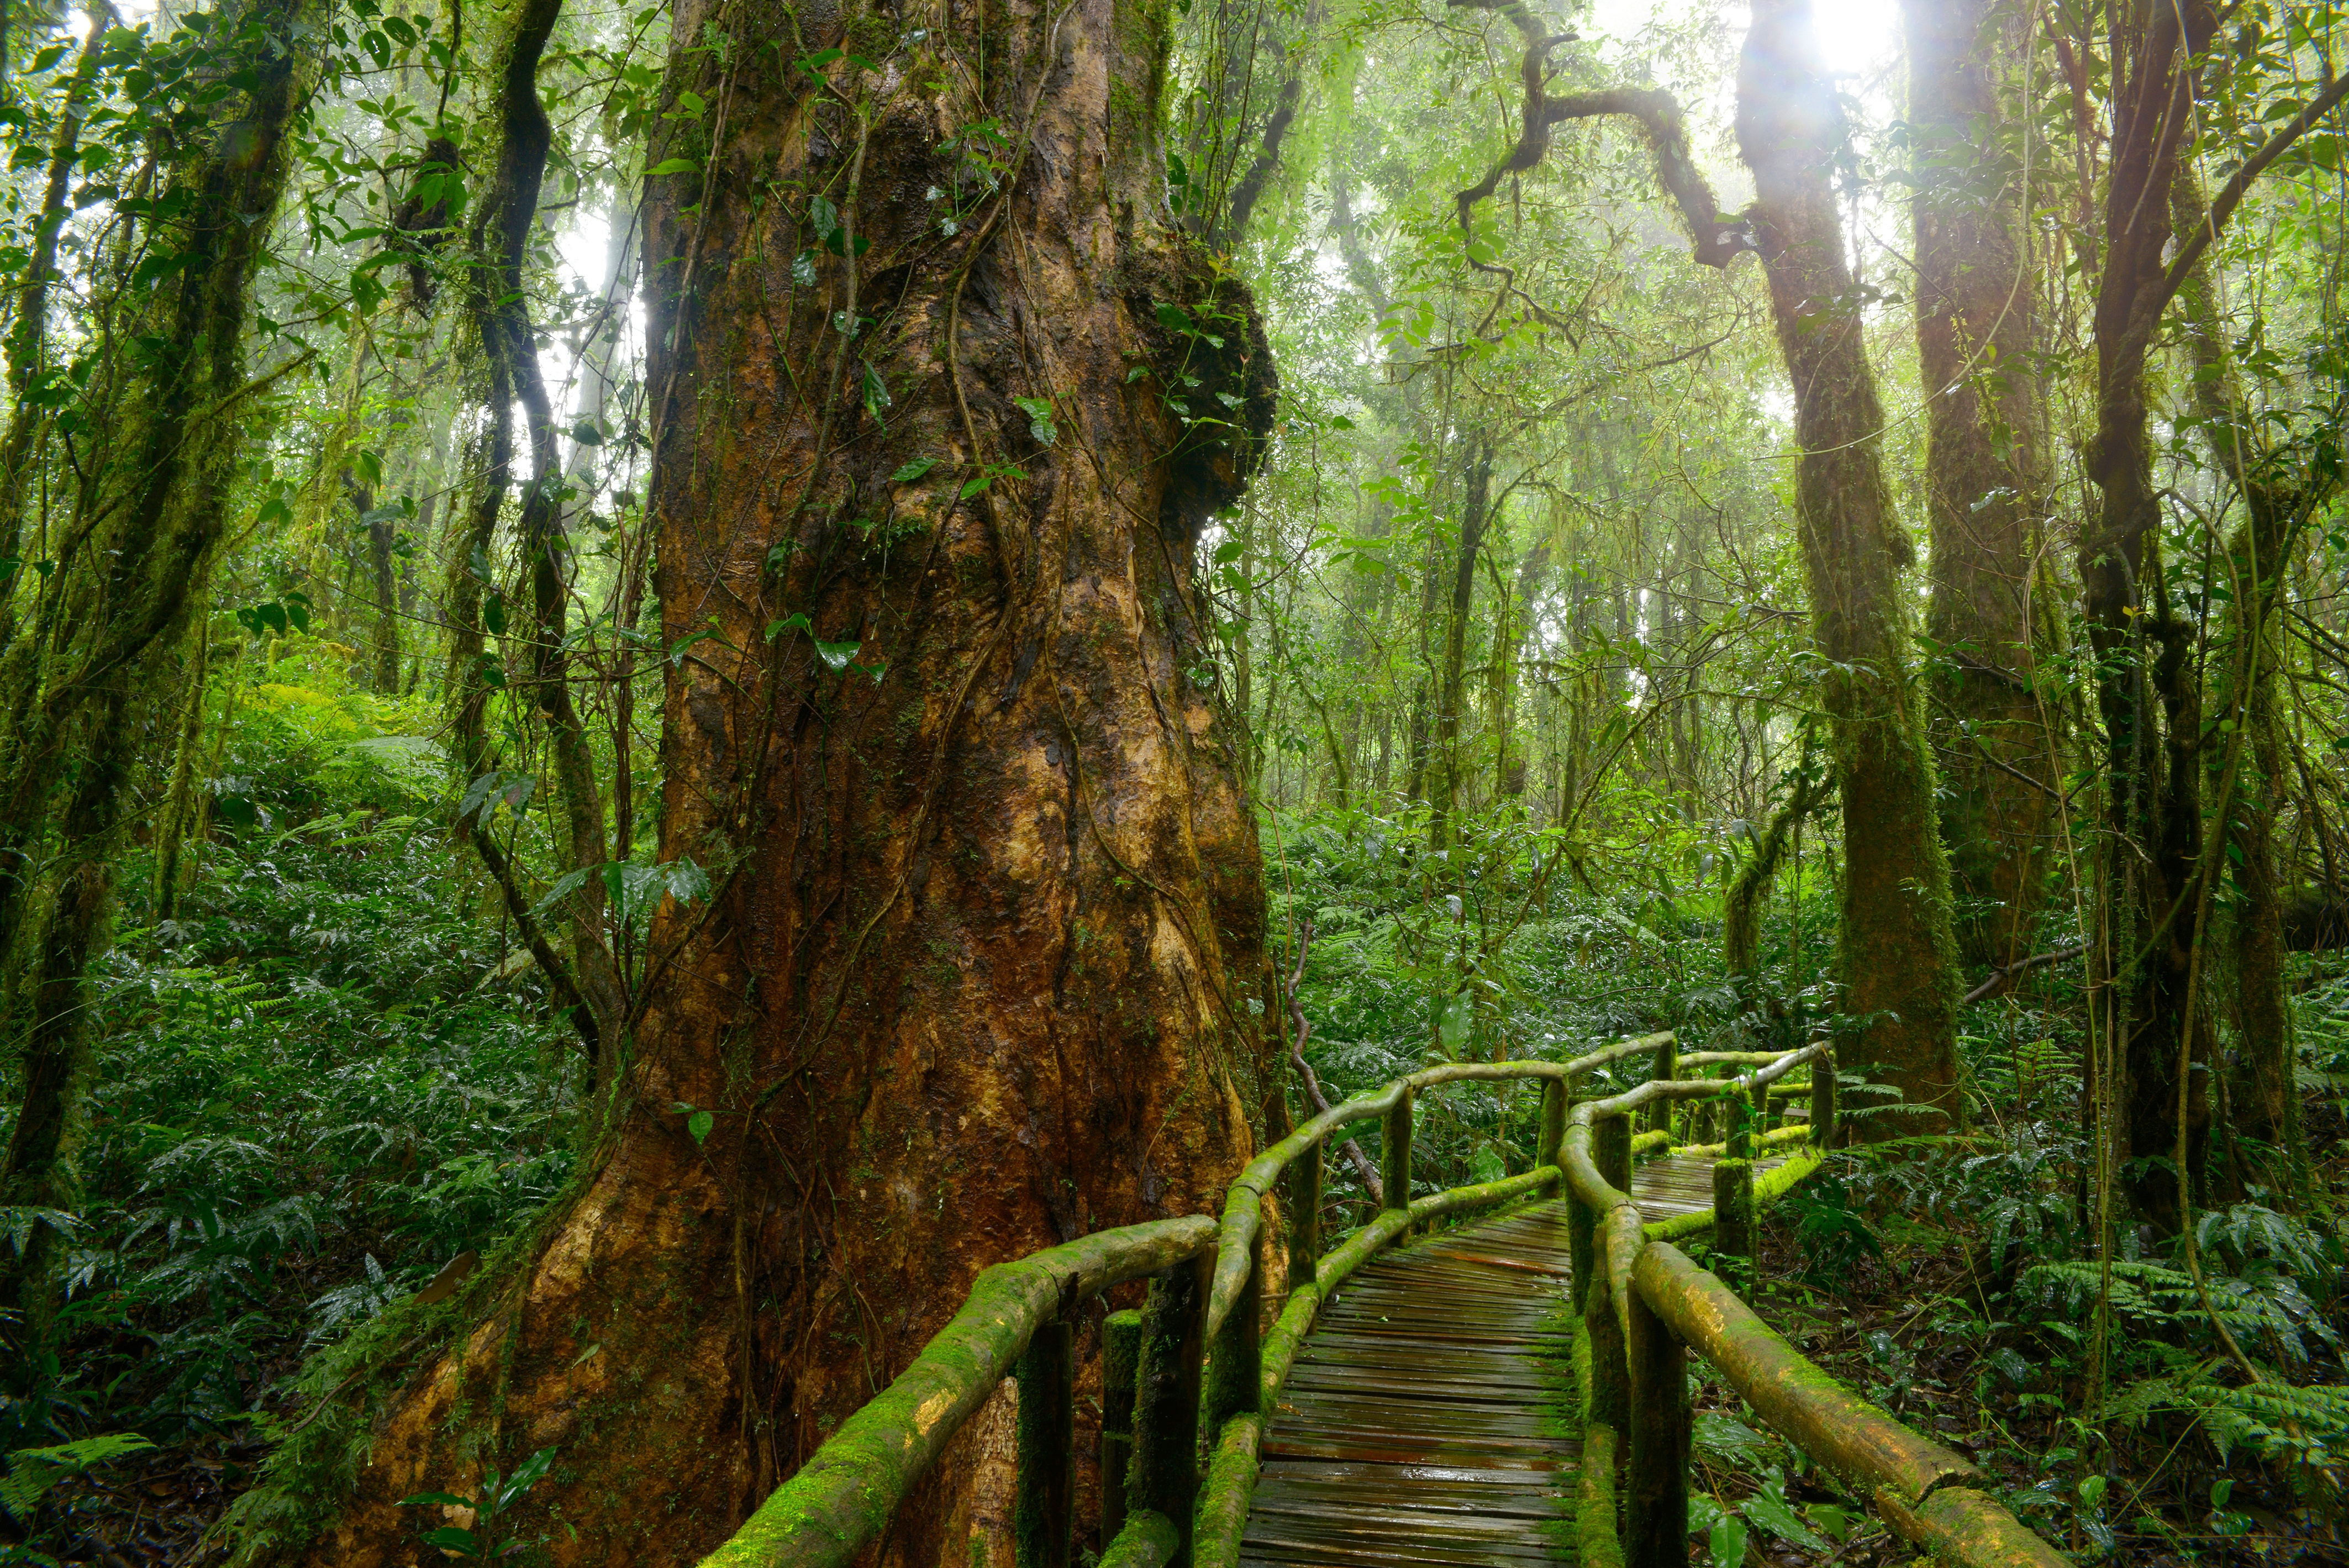 lo rewilding trees forests - HD4252×2838